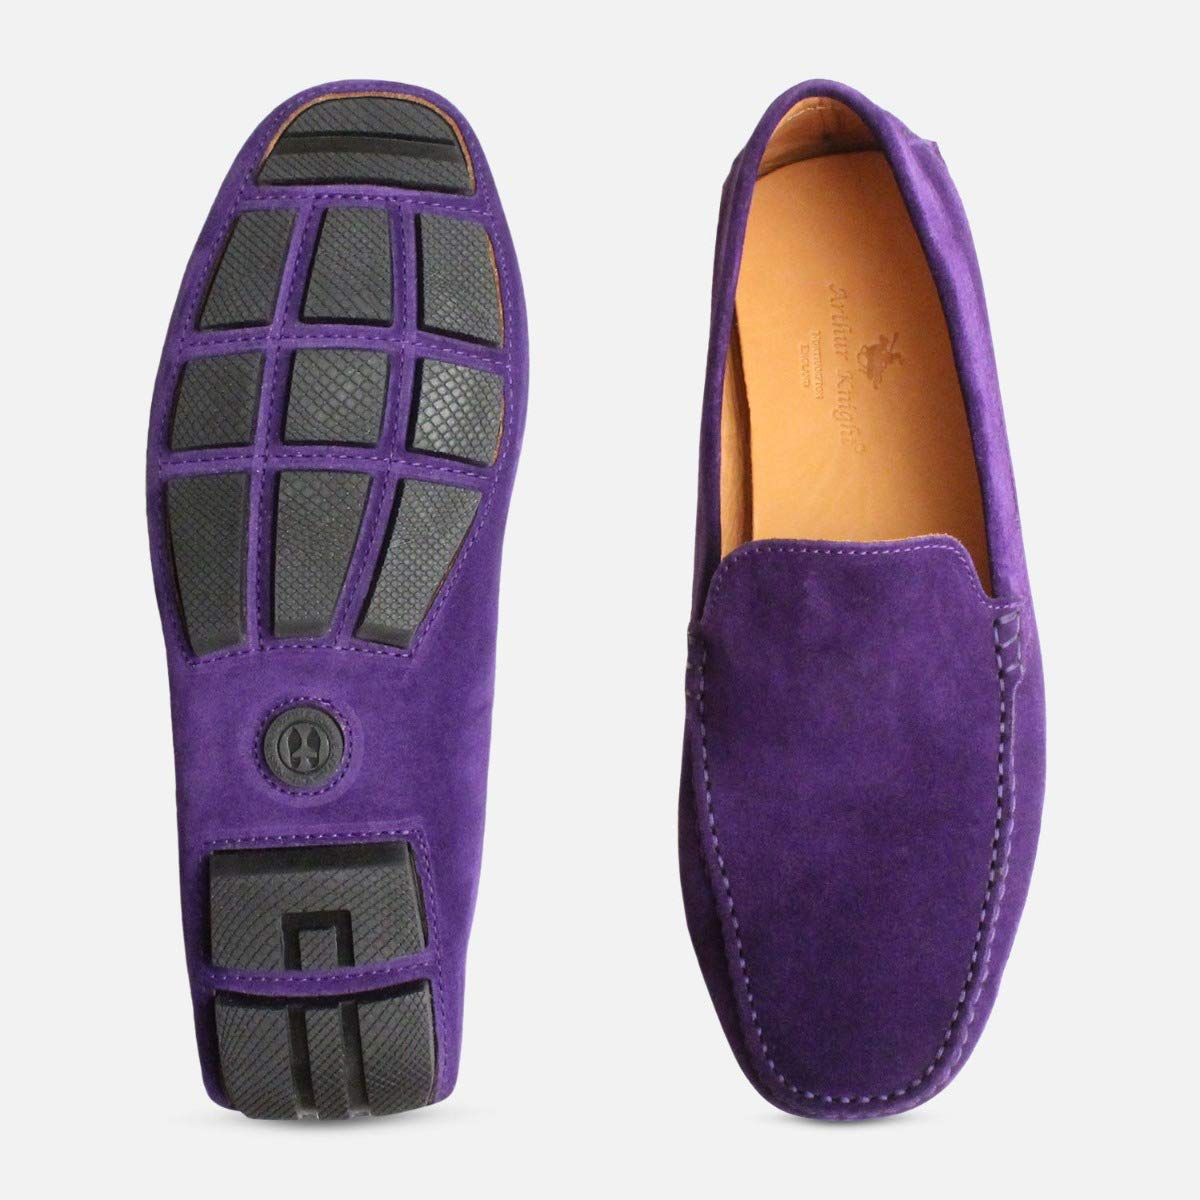 08966bcadb6 Deep Purple Italian Moccasins by Arthur Knight Shoes-Mens UK 10   Amazon.co.uk  Shoes   Bags